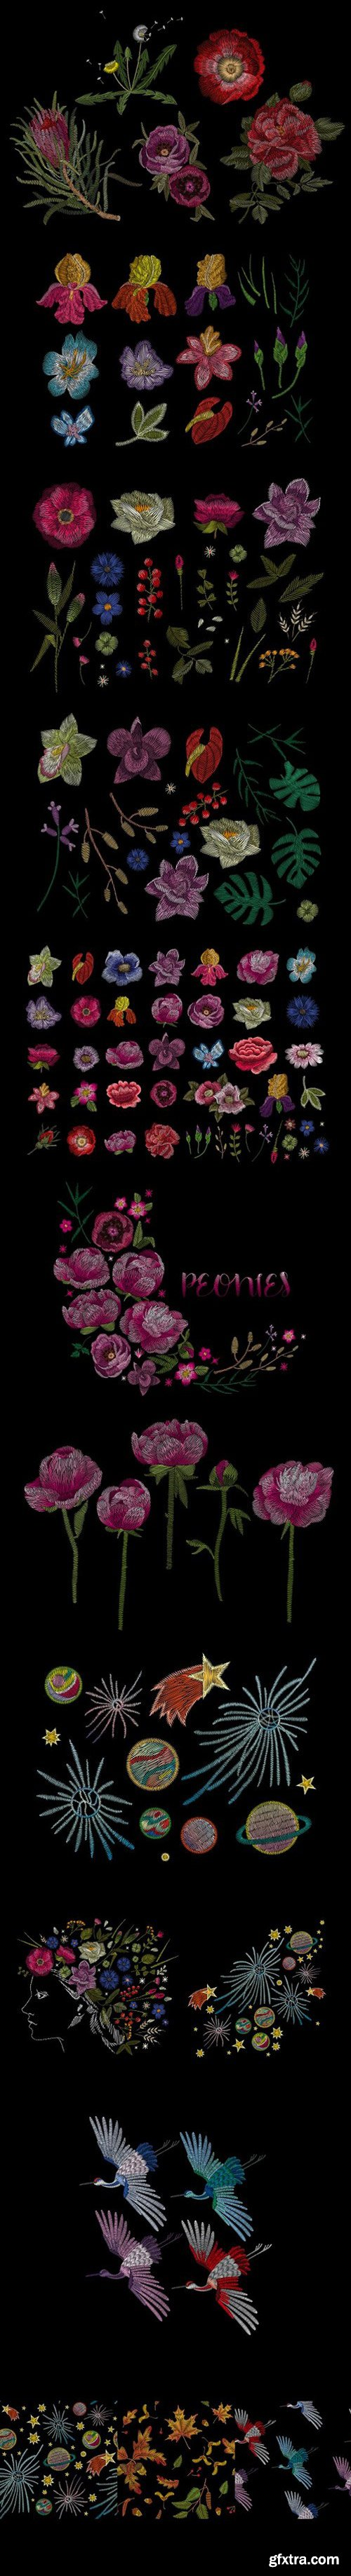 Flower embroidery 2